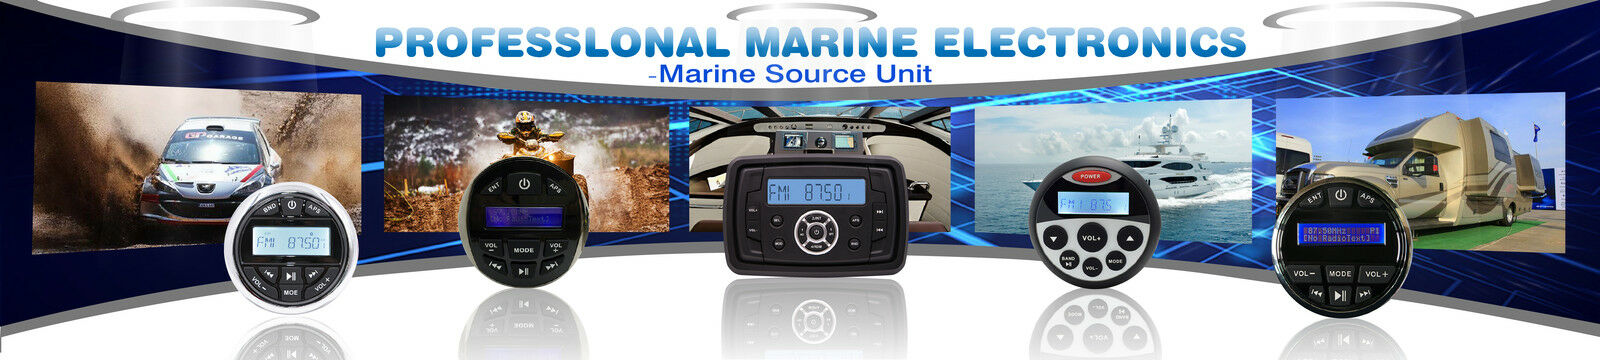 professionalmarineelectronics